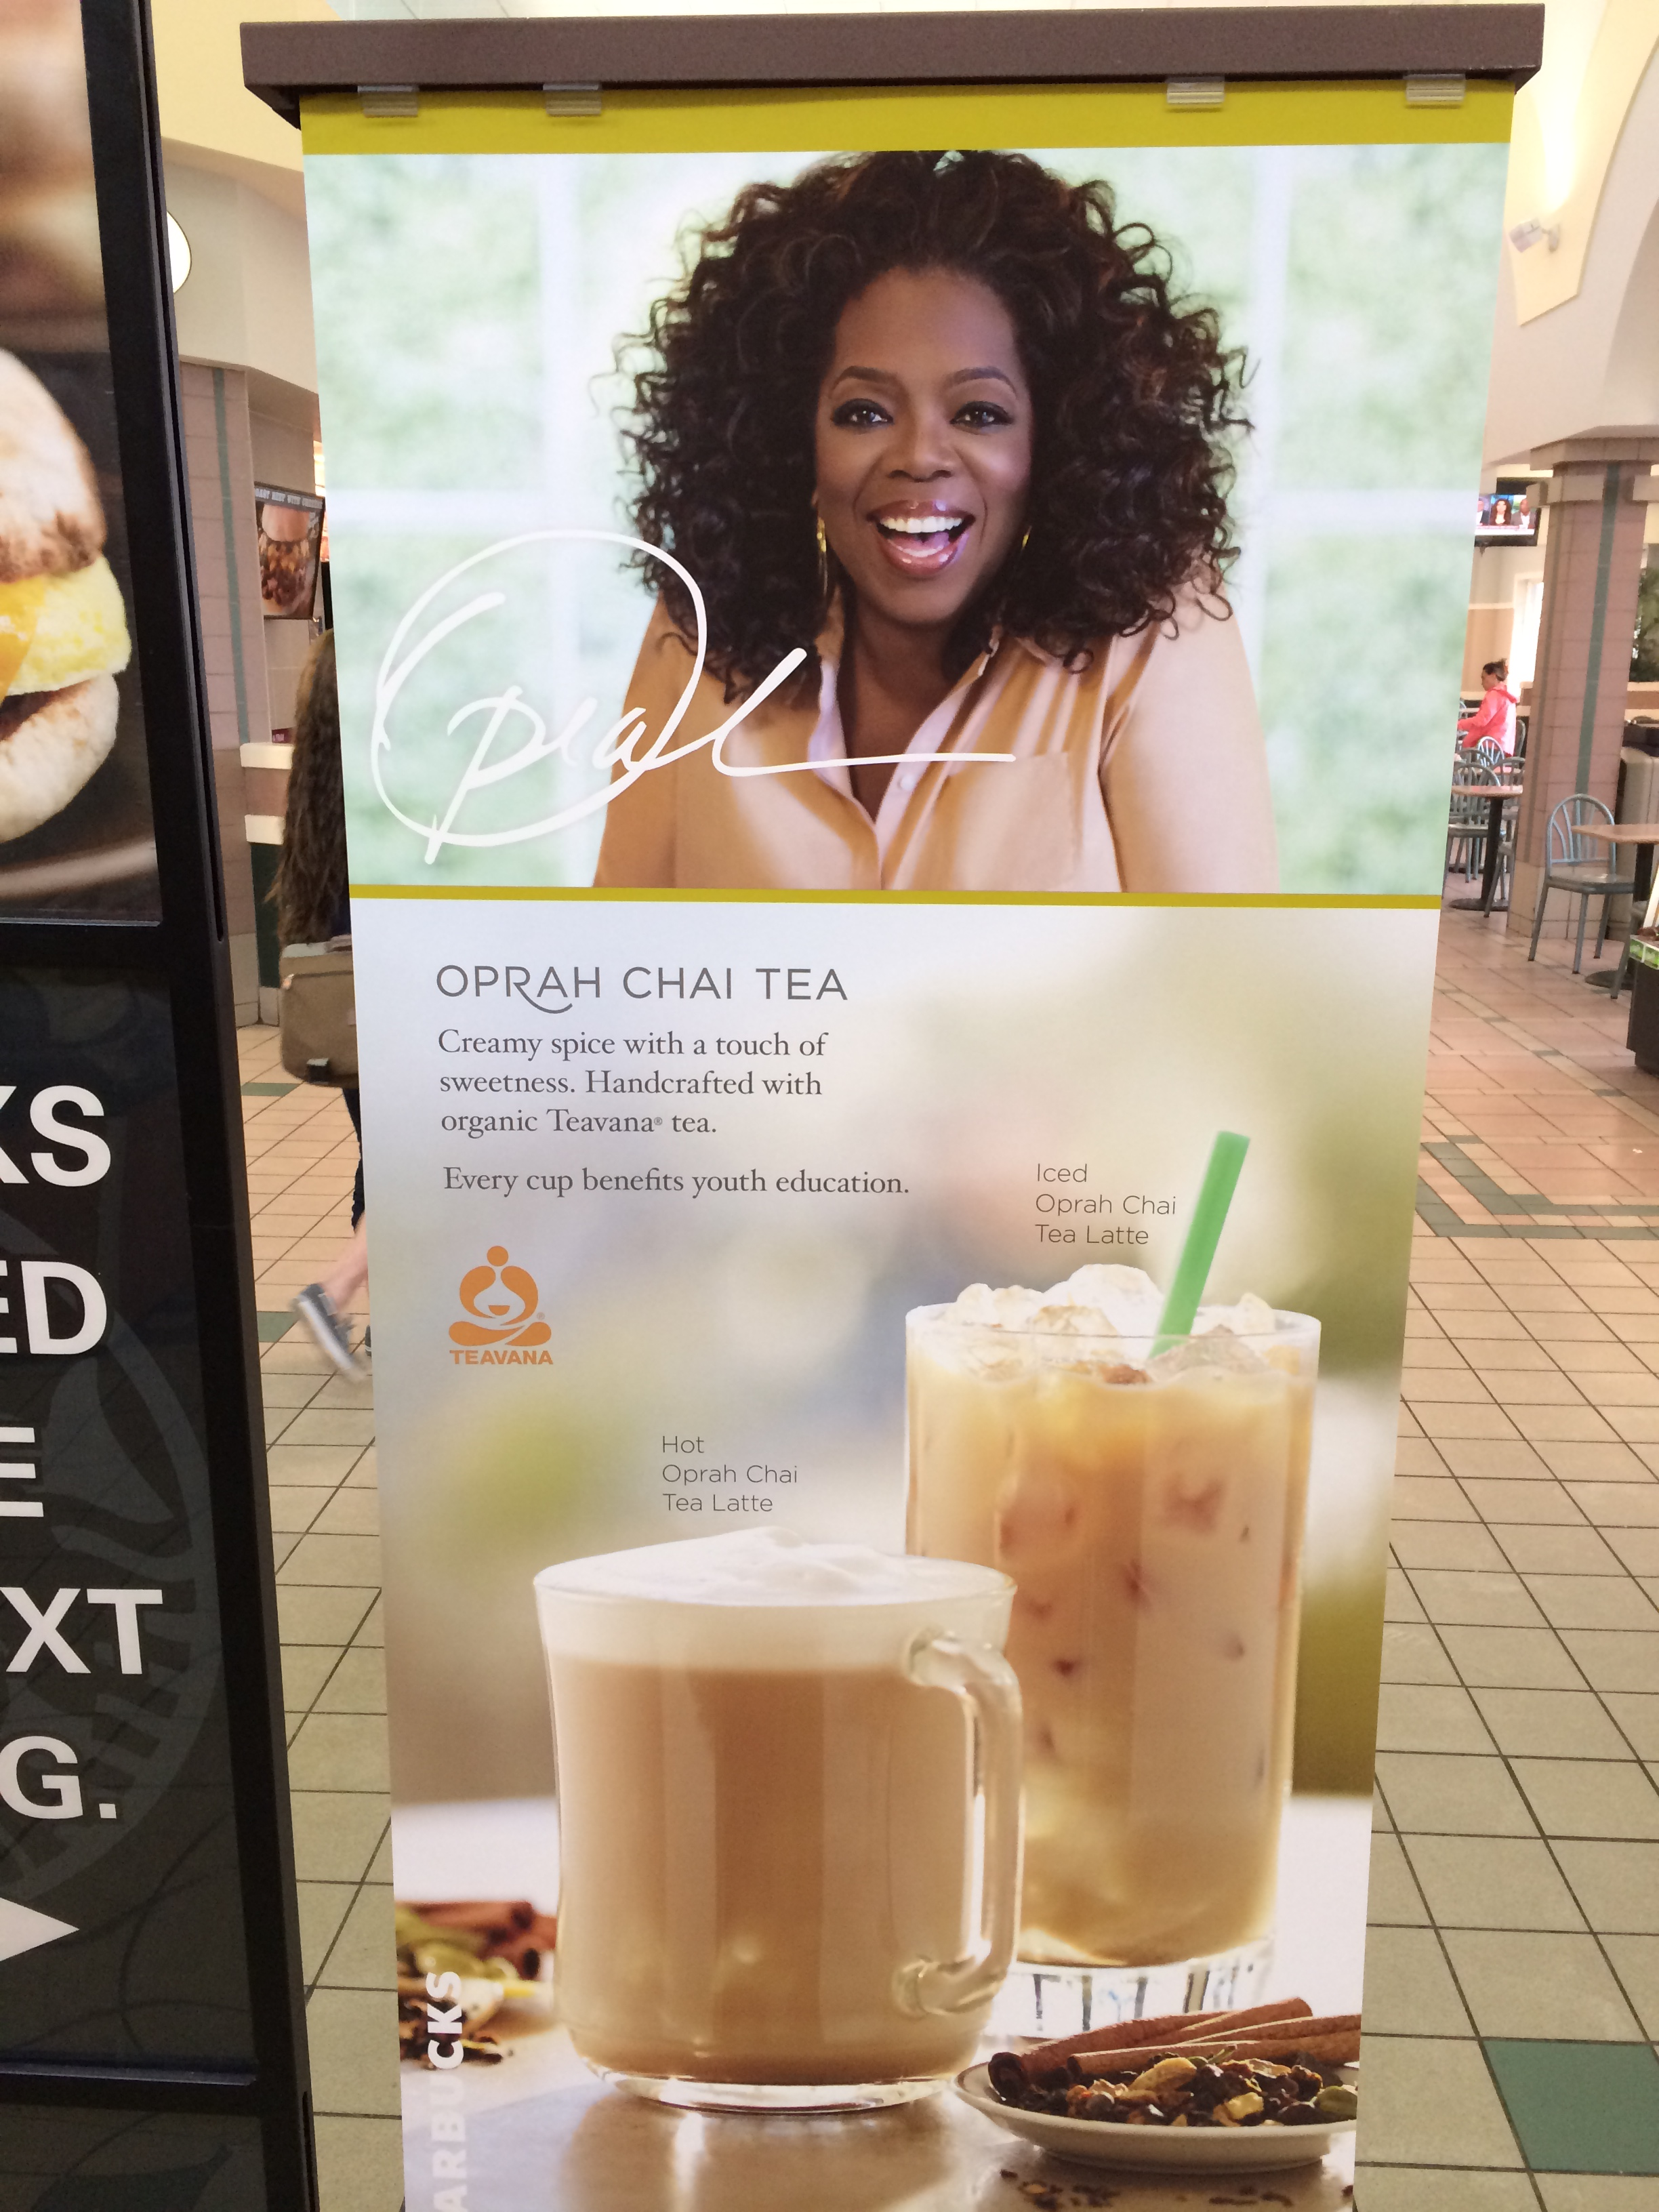 Teavana Oprah Chai Tea Now at Starbucks!